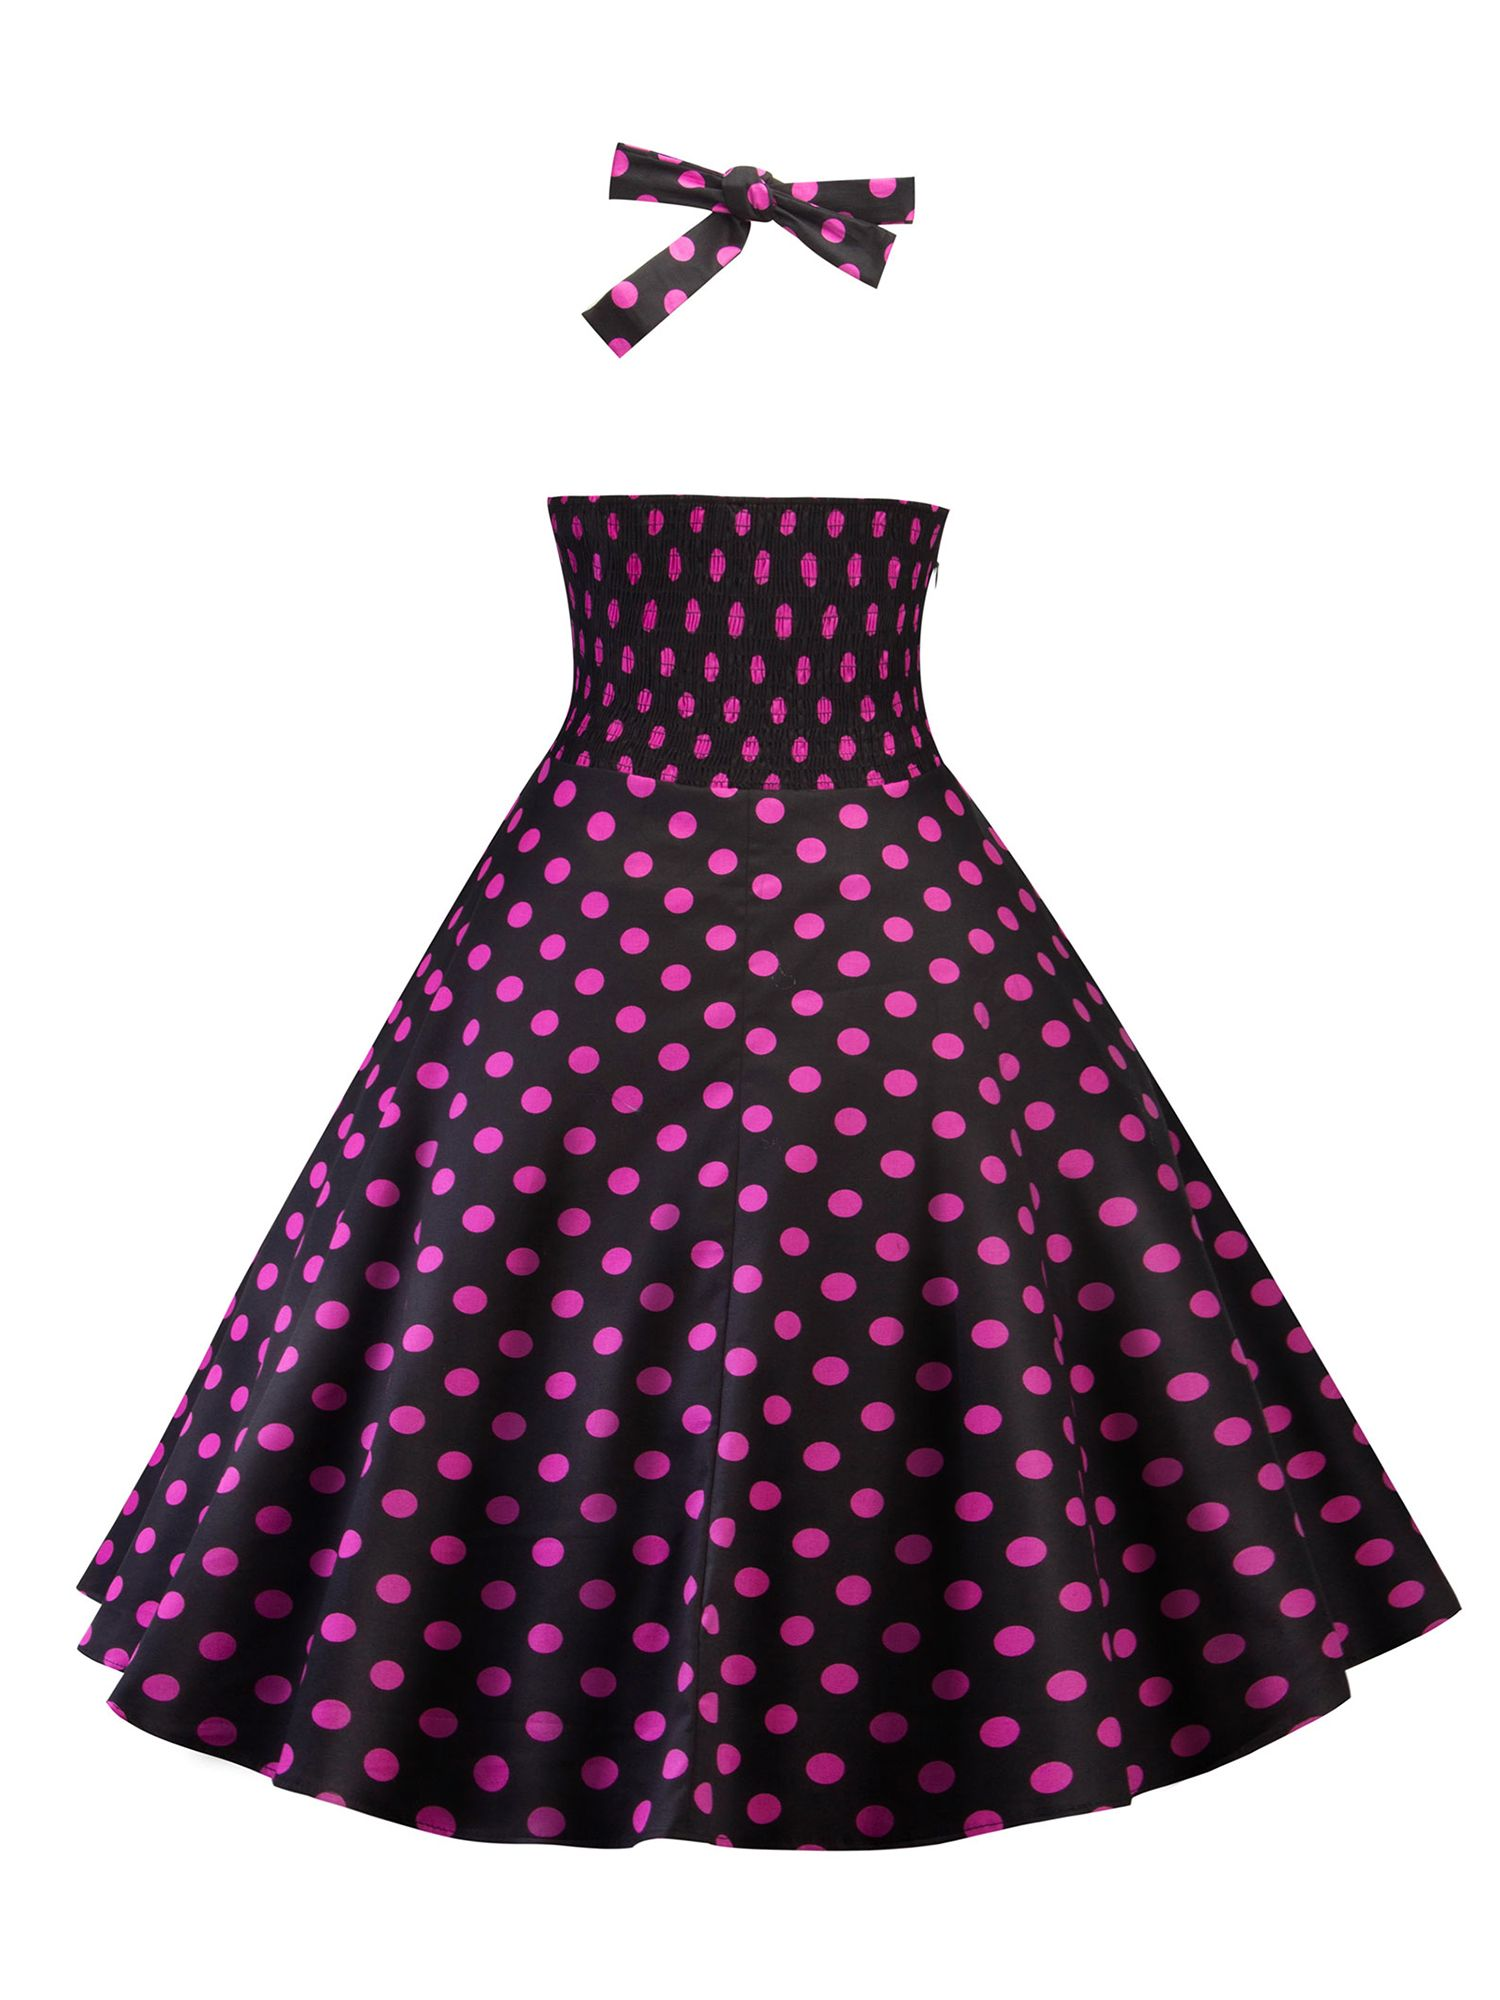 a8f0a2e29c0bc Vintage Dress for Women 50s 60s Retro Floral Print Rockabilly Halter Swing  Dress Party Prom Pinup Cocktail Ball Gown#Retro, #Print, #Floral